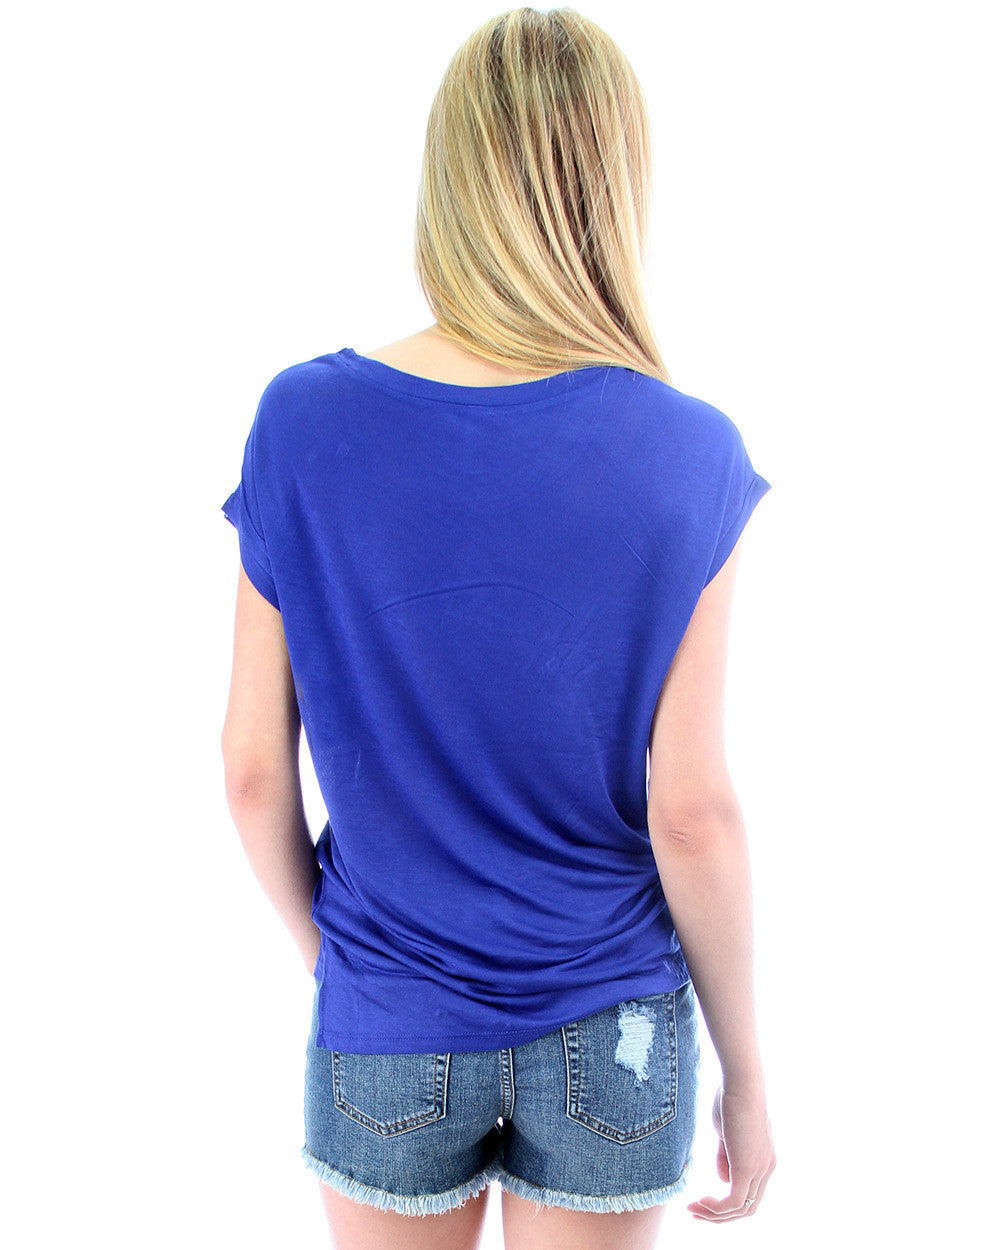 Loose Fitting Tee with Zipper in Blue